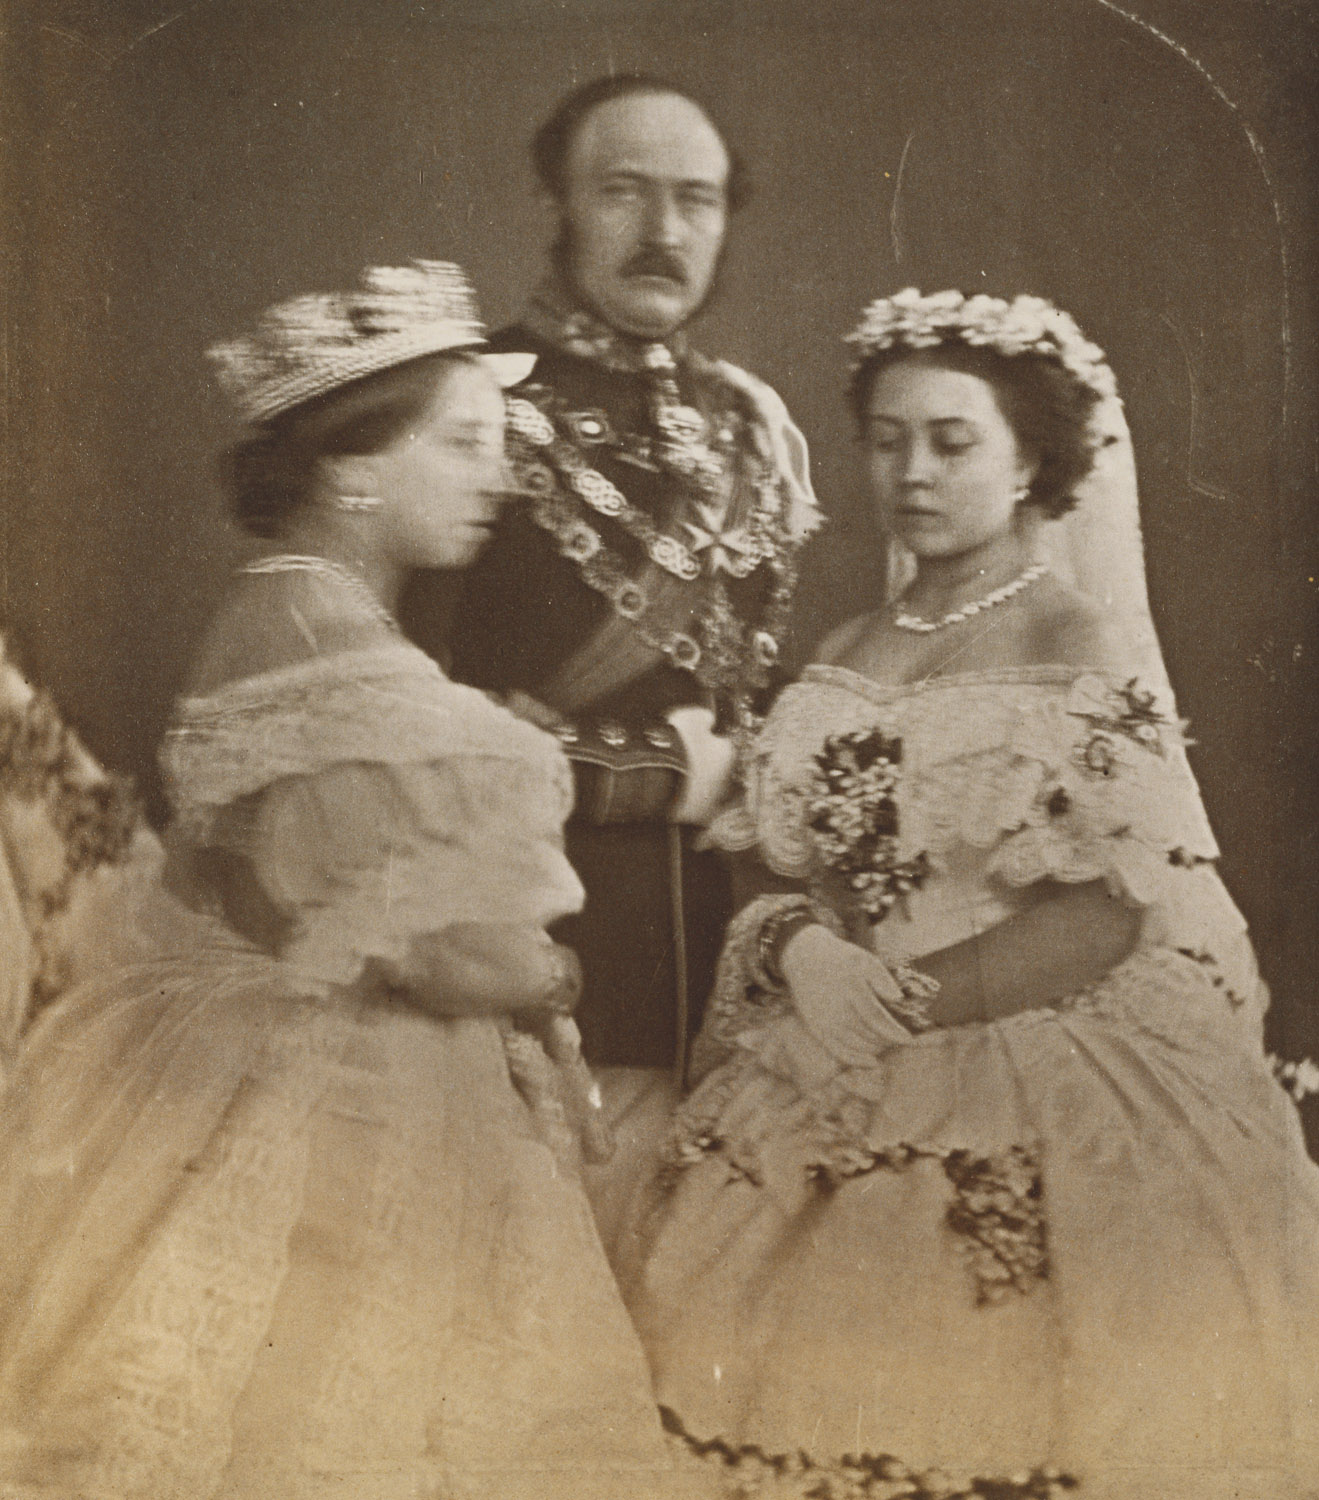 Wedding Dress Of Victoria, Princess Royal